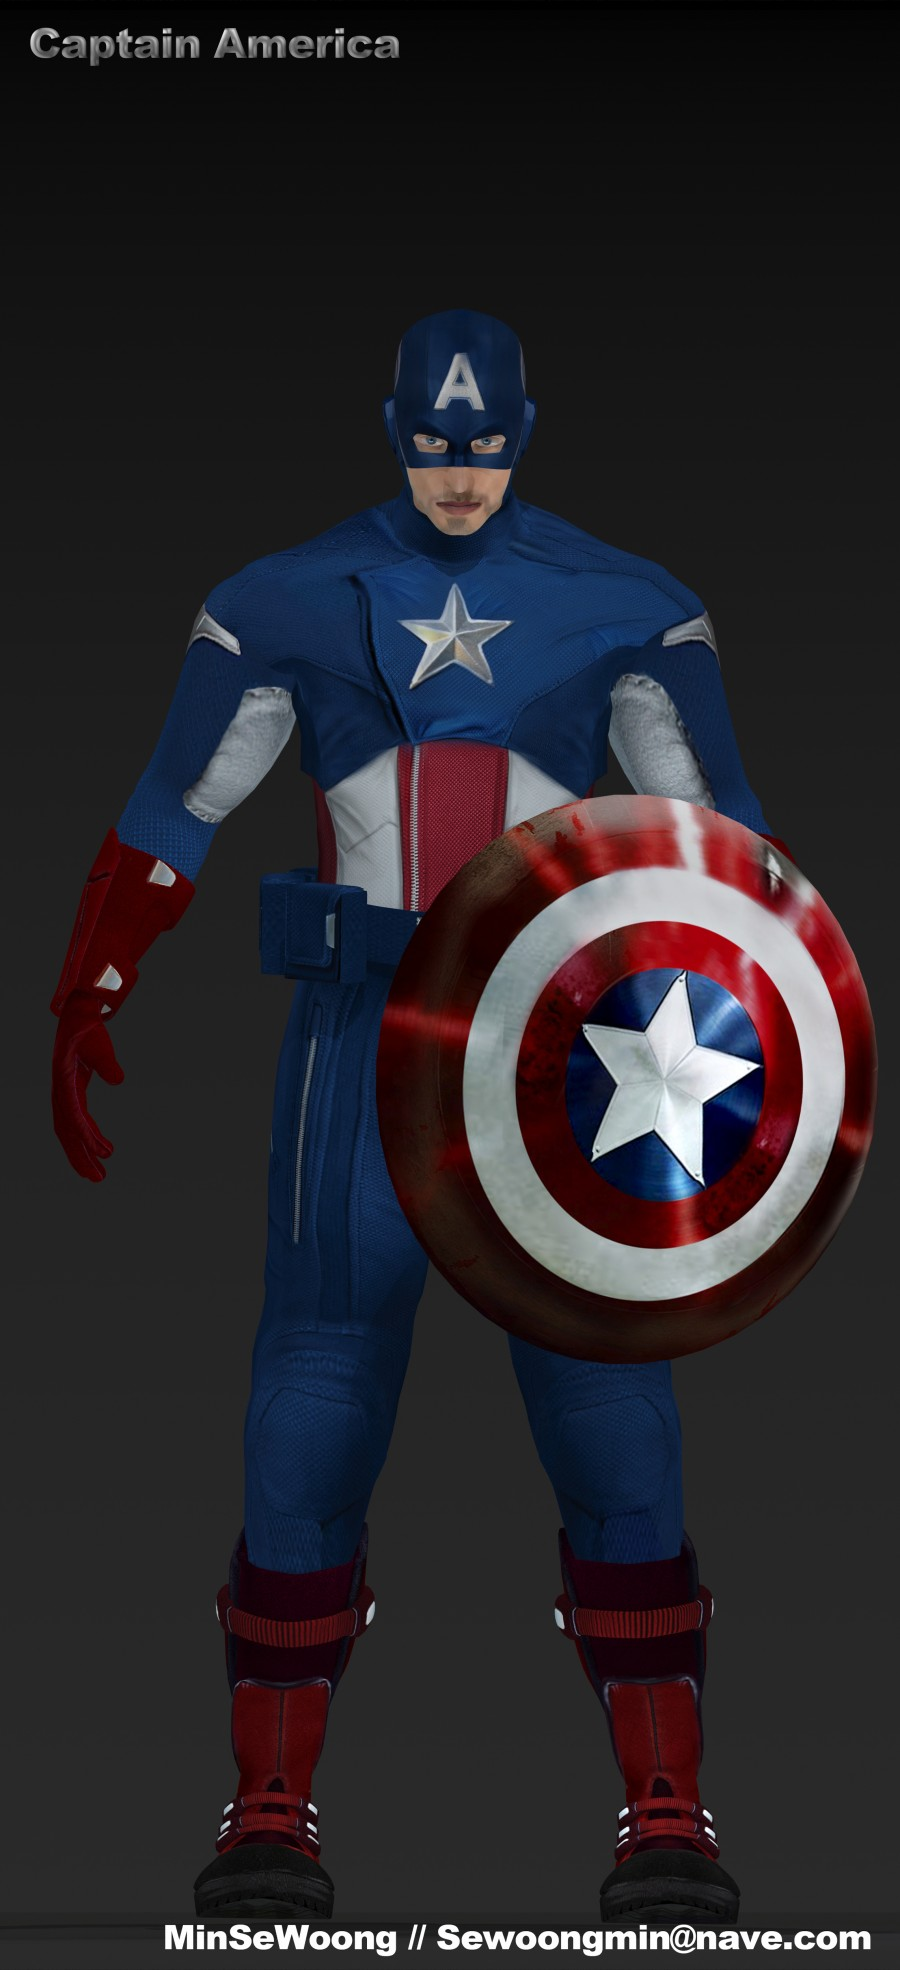 CaptainAmerica_2.jpg